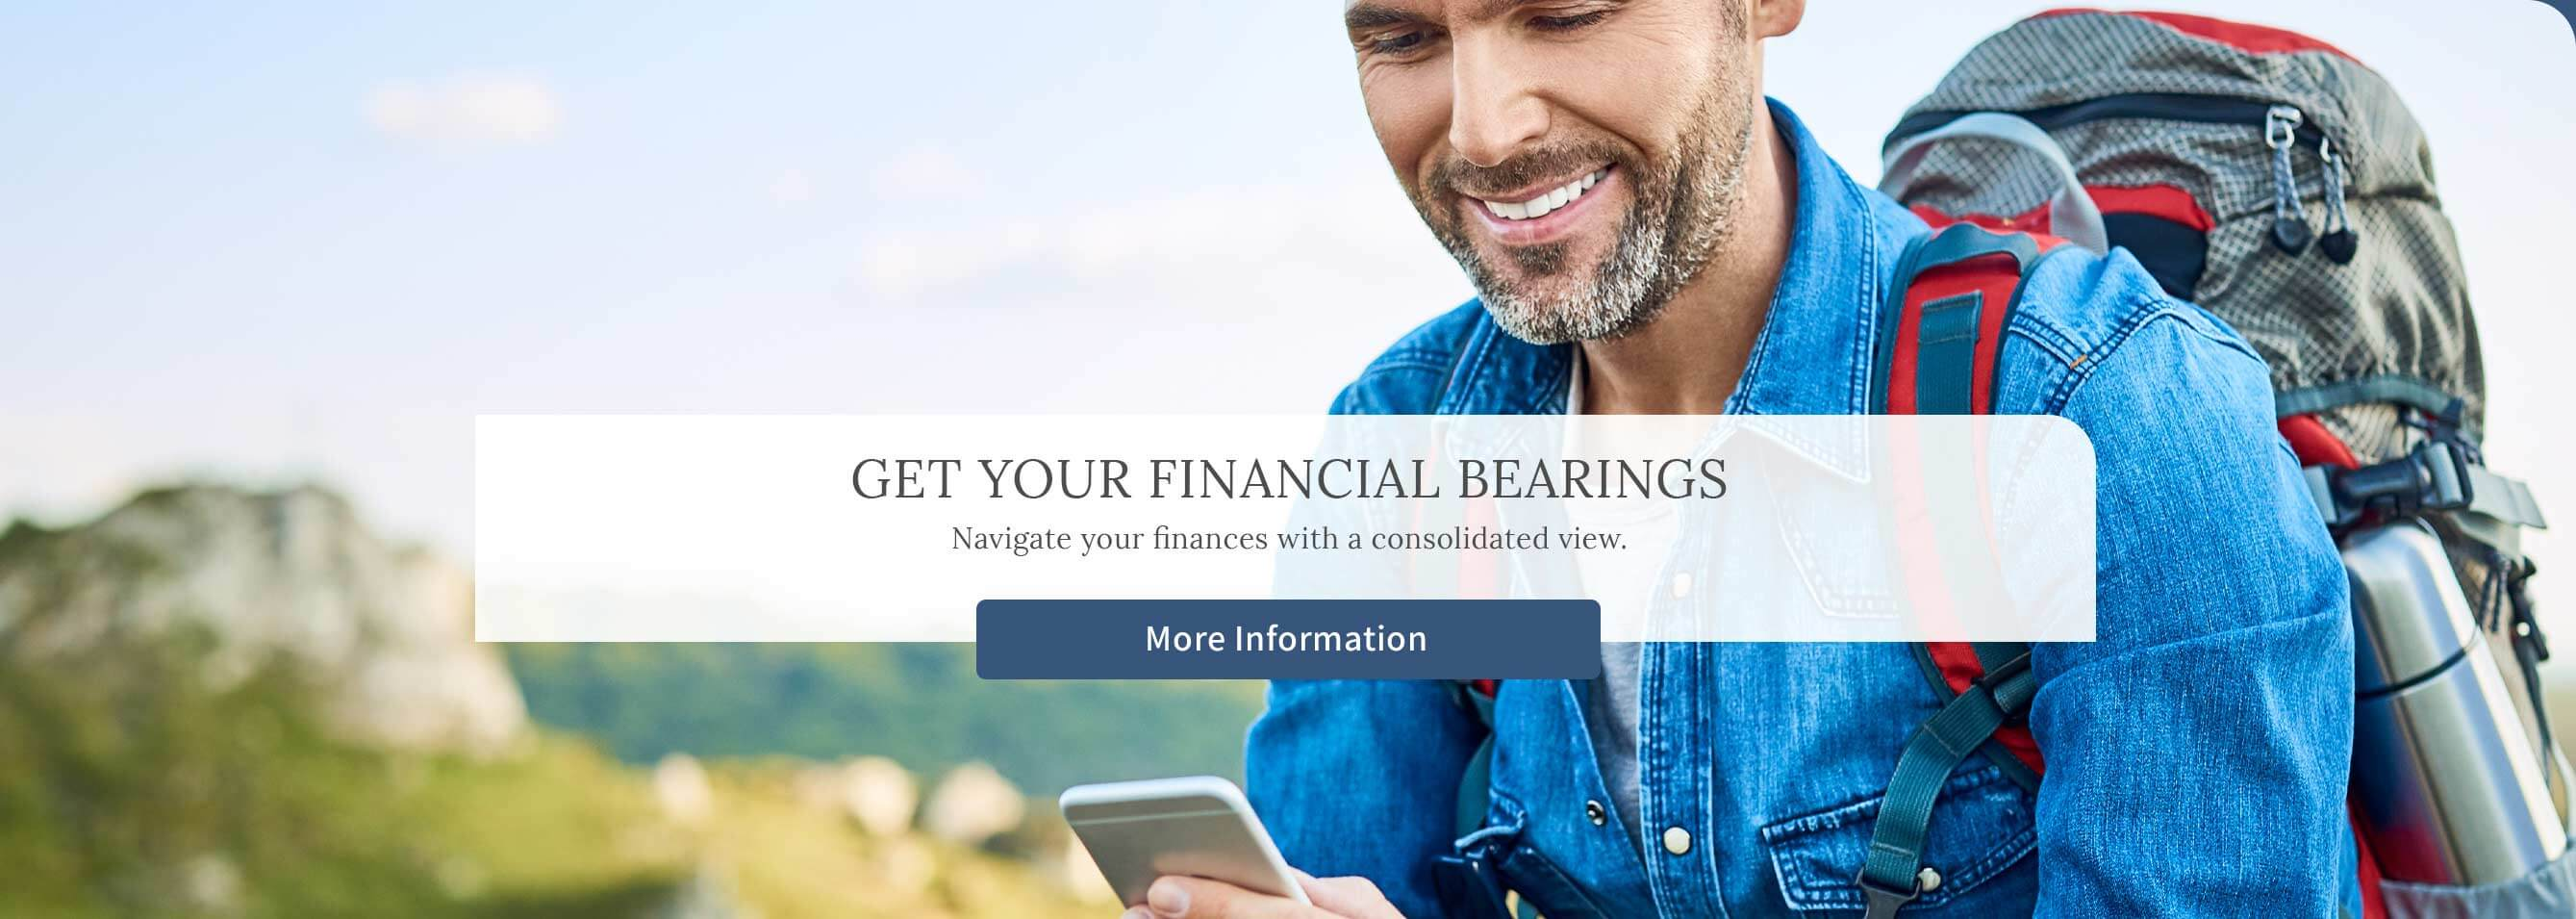 Get Your Financial Bearings. Navigate your finances with a consolidated view. - Get More Information Here